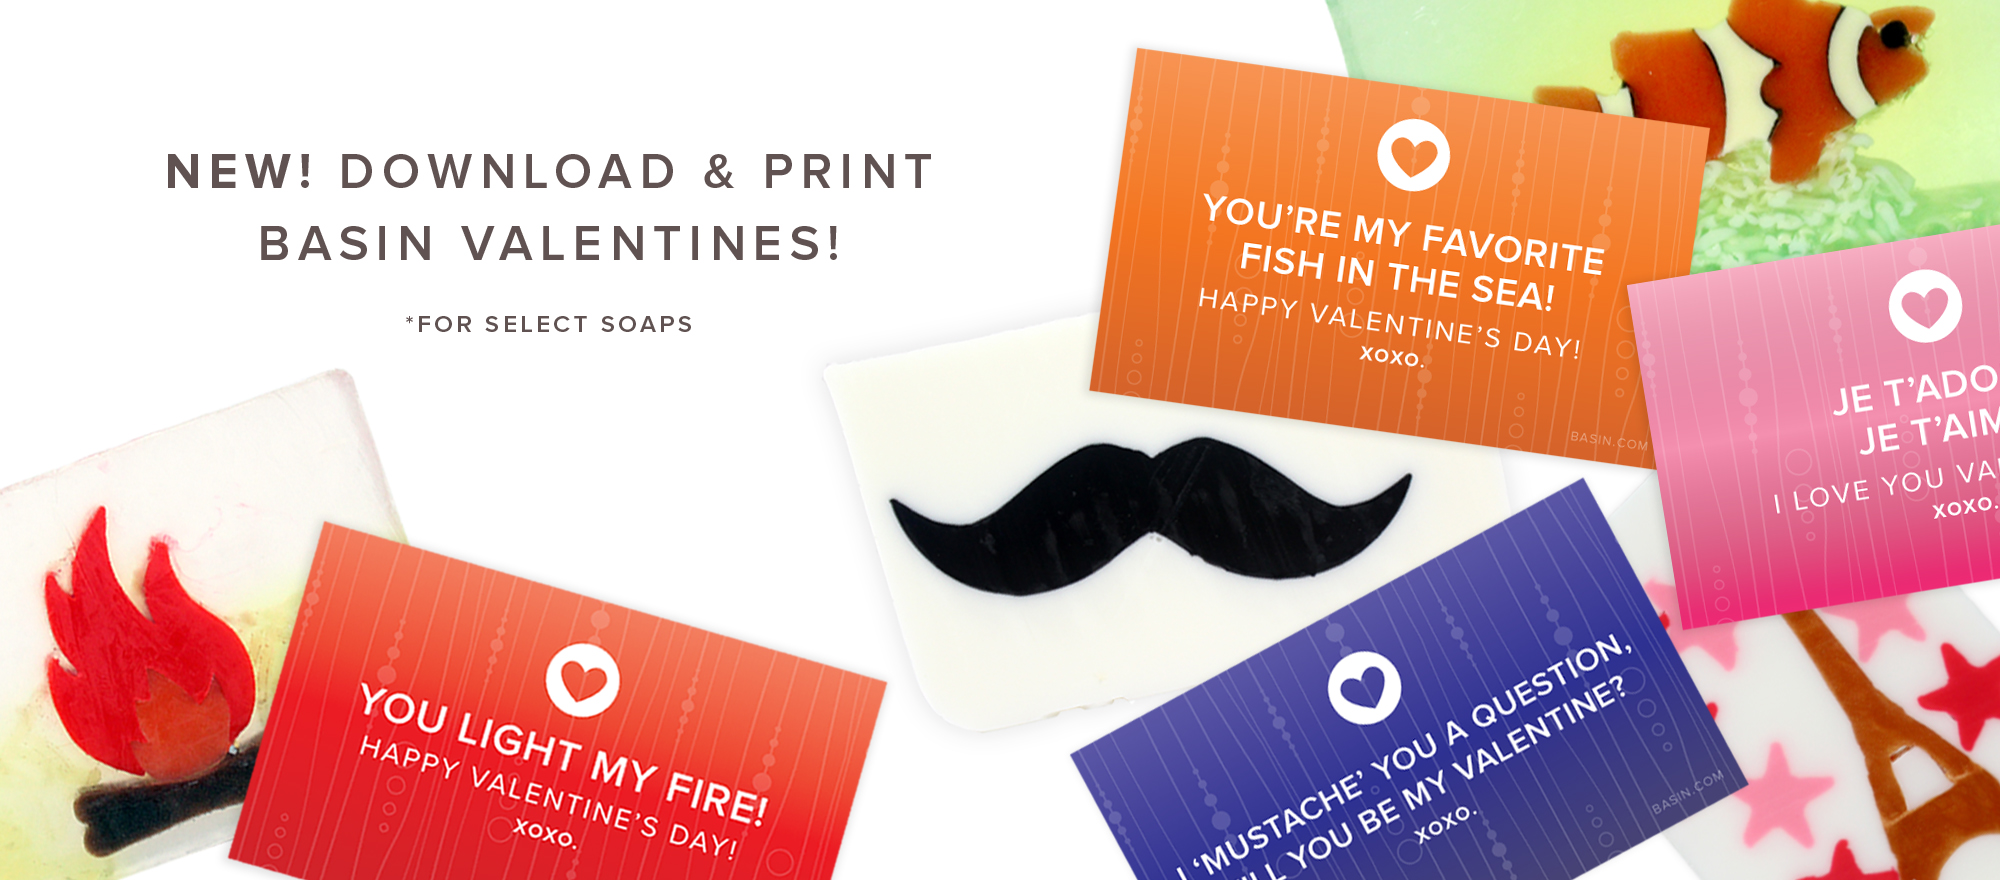 Downloadable Soap Valentines